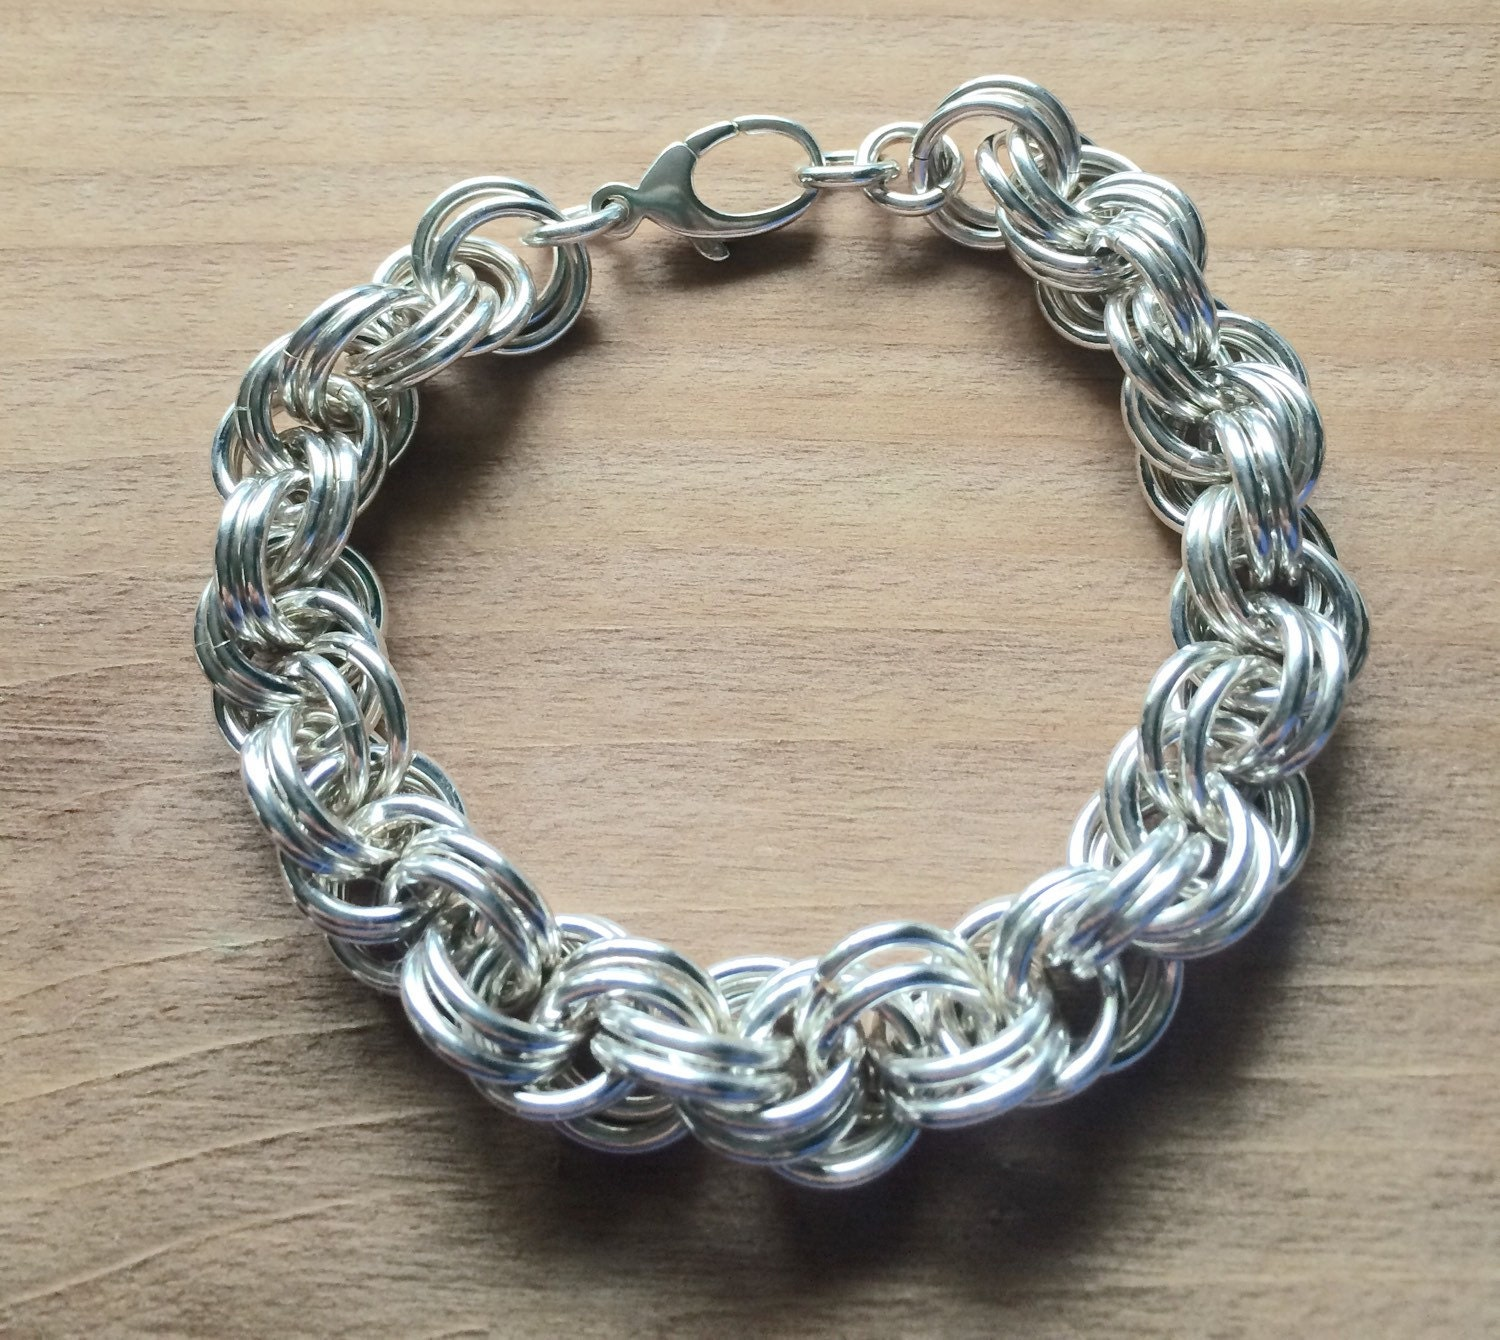 Crib for sale london ontario - Sterling Silver Rope Chainmail Bracelet Double Spiral Sterling Bracelet Made In Canada Chainmaille Jewellery Chainmail Jewellery London